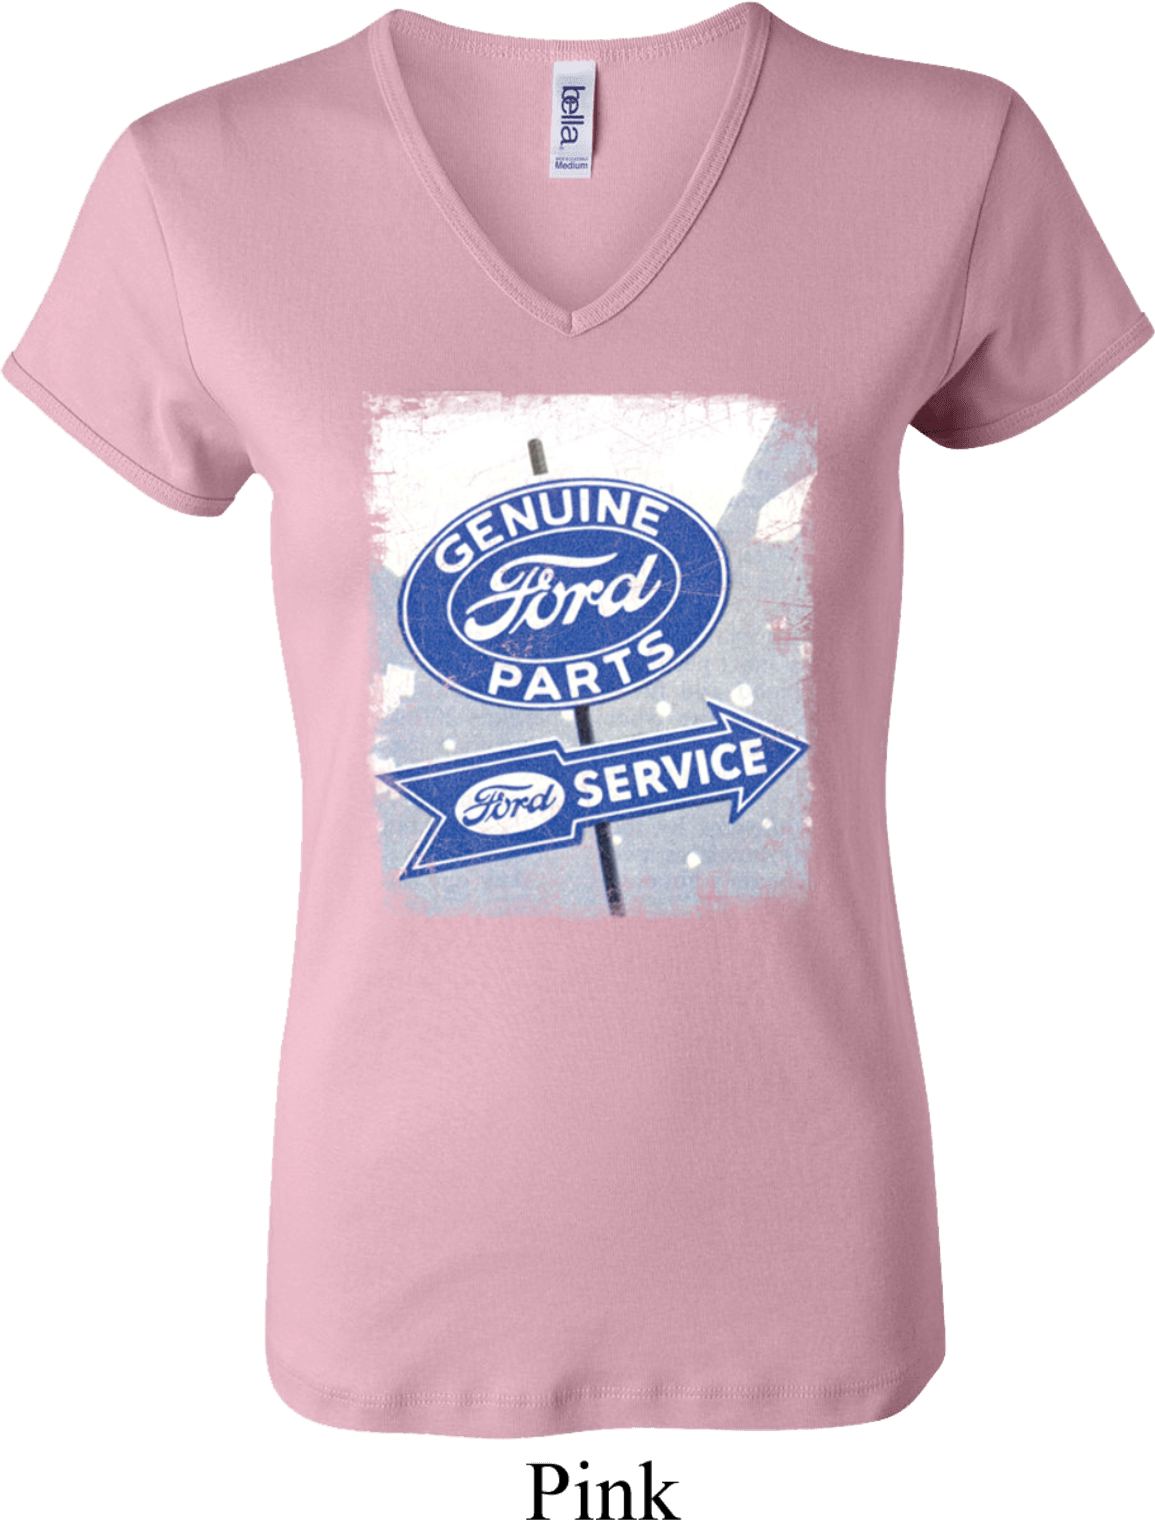 Ladies Ford Shirt Vintage Sign Genuine Ford Parts V-Neck -5685